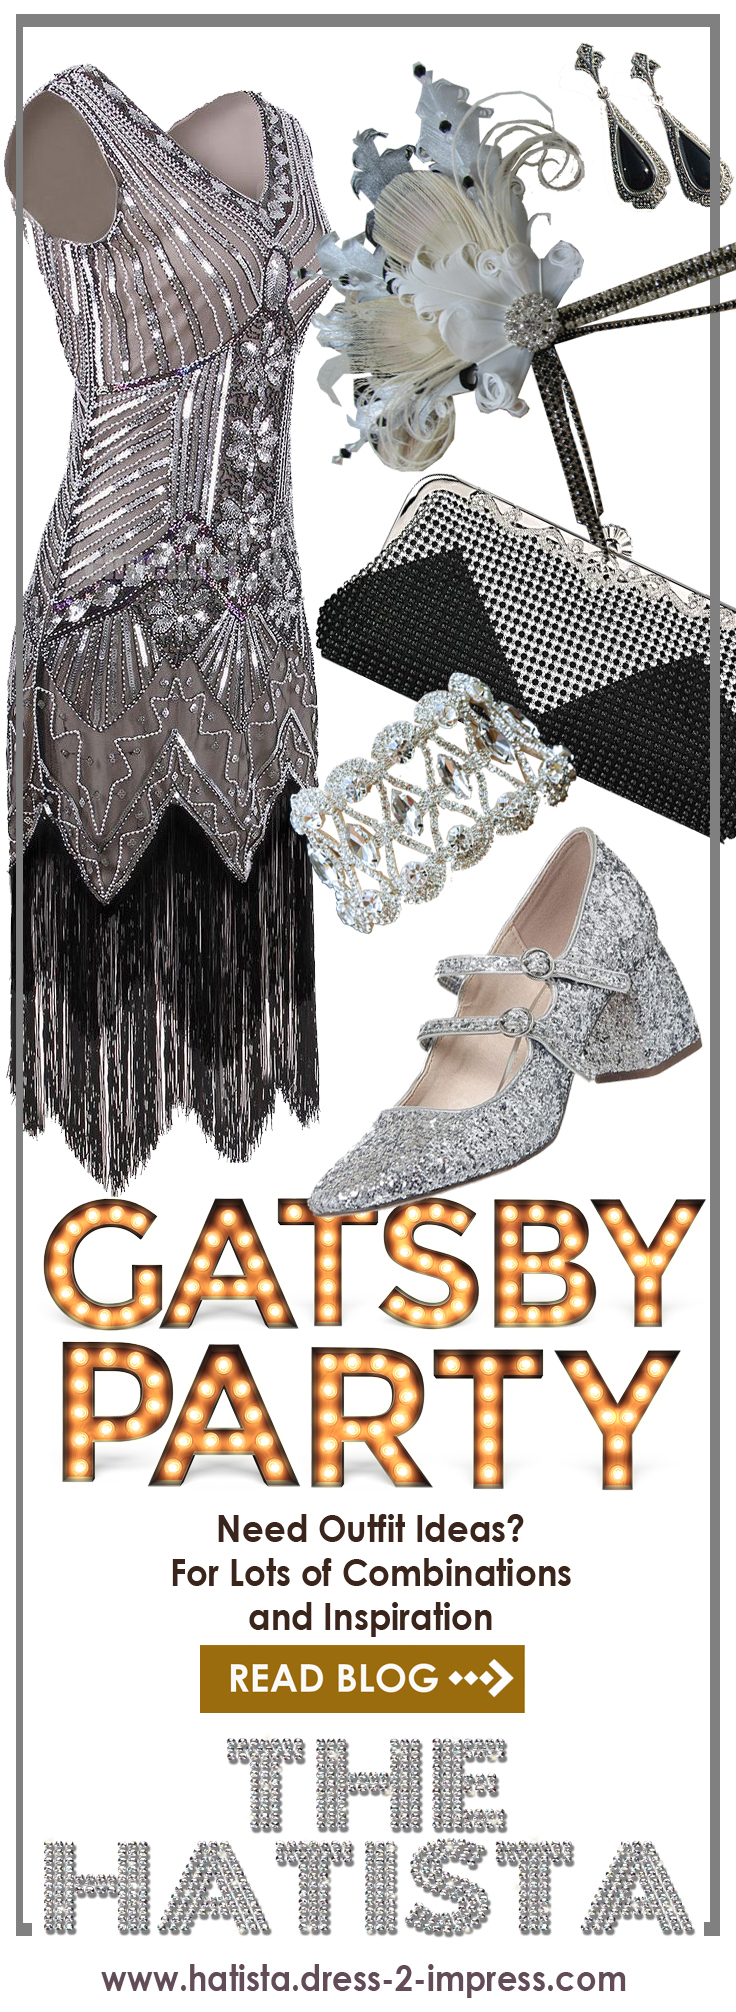 Outfit inspiration, ideas for a Gatsby Party. What to wear for Jazz Age Lawn Party or Gatsby 1920's Flapper Girl Christmas, Great Gatsby Party Outfits. Great Gatsby Party Costumes. 1920s New Years Eve Party, Birthday or Halloween Party from the Hatista #outfitideas #gatsbyparty